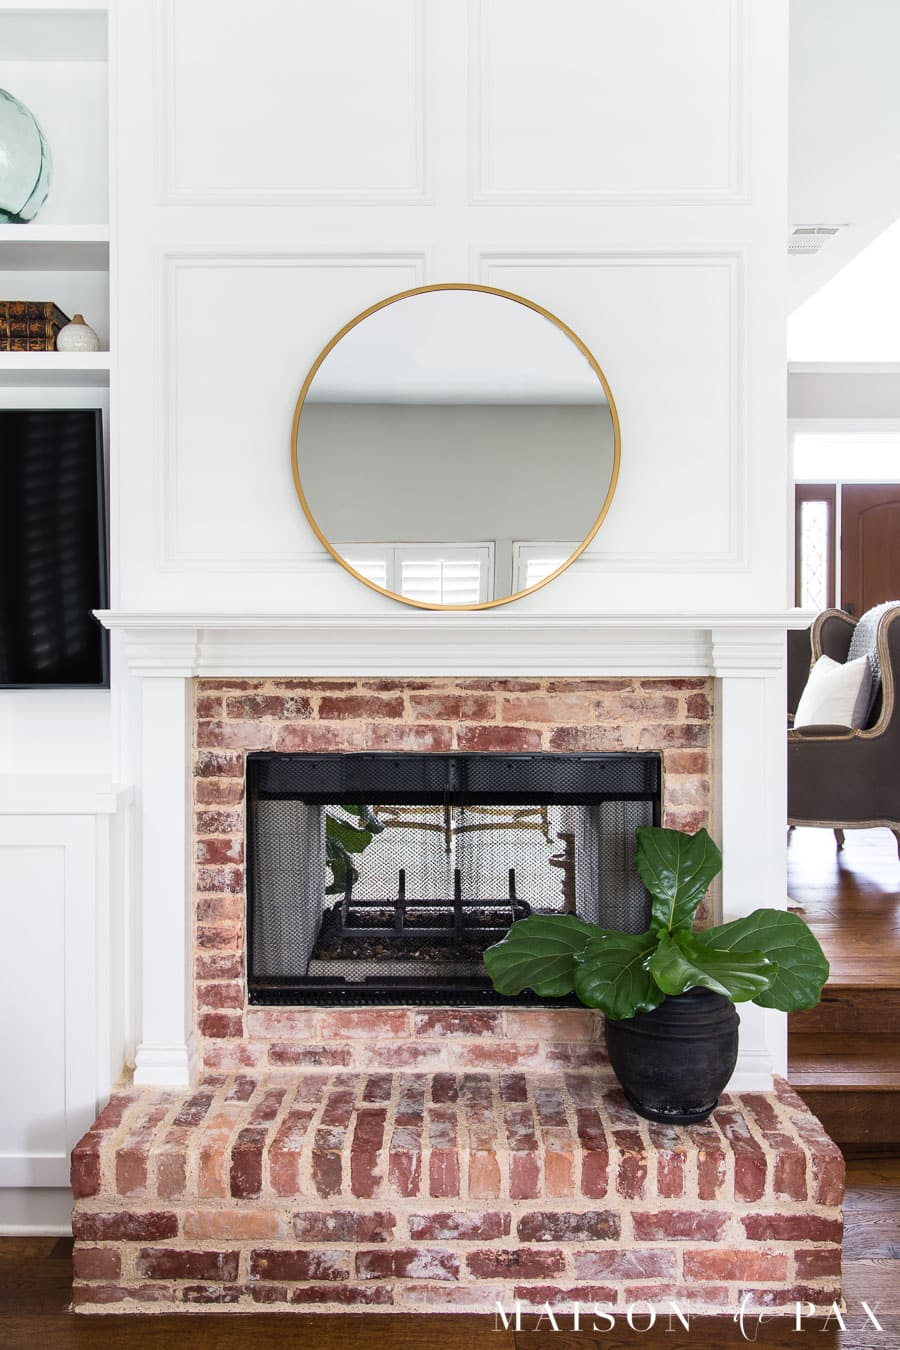 round mirror above mantel and fiddle leaf fig on hearth | Maison de Pax